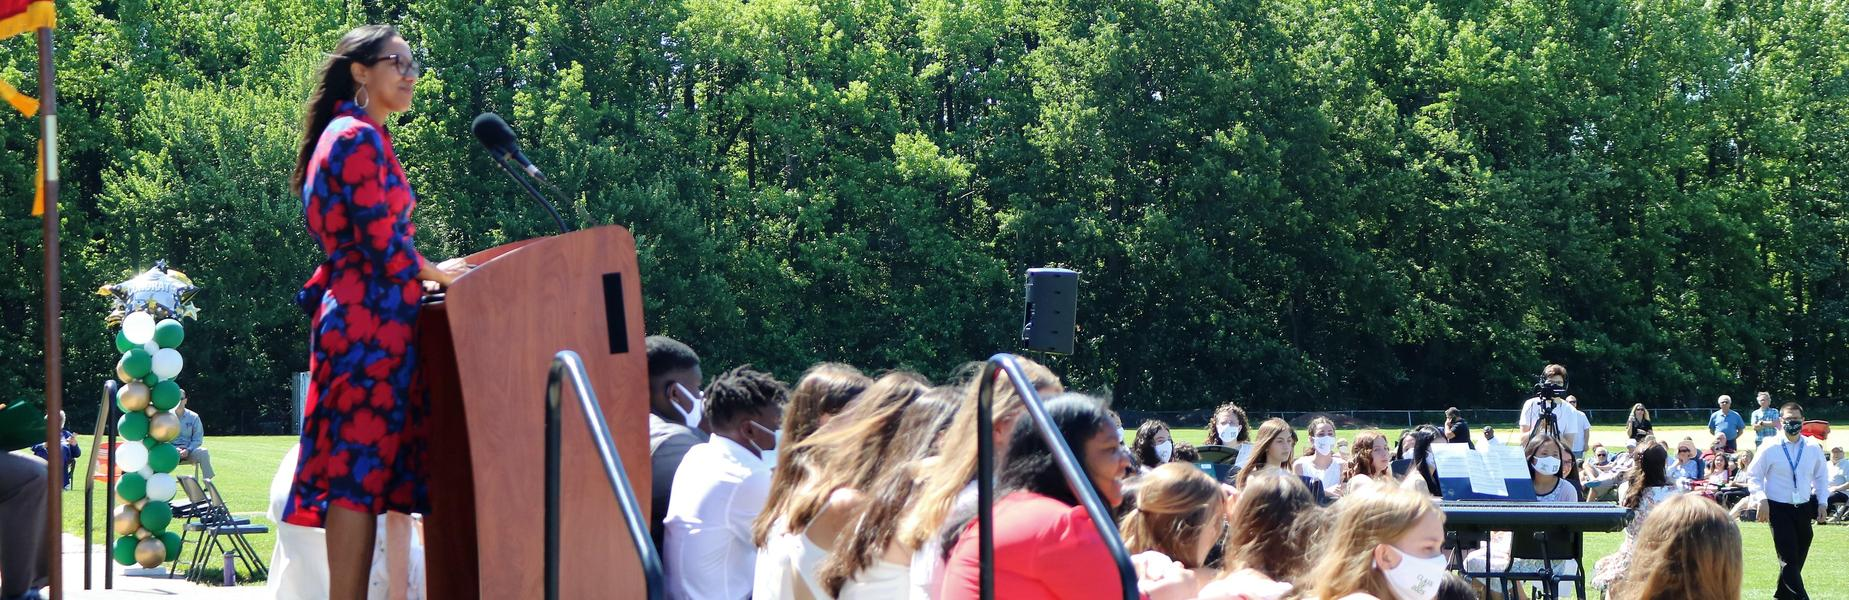 Photo of Edison Asst Principal Crystal Marsh addressing students and families during 8th grade promotion ceremony.